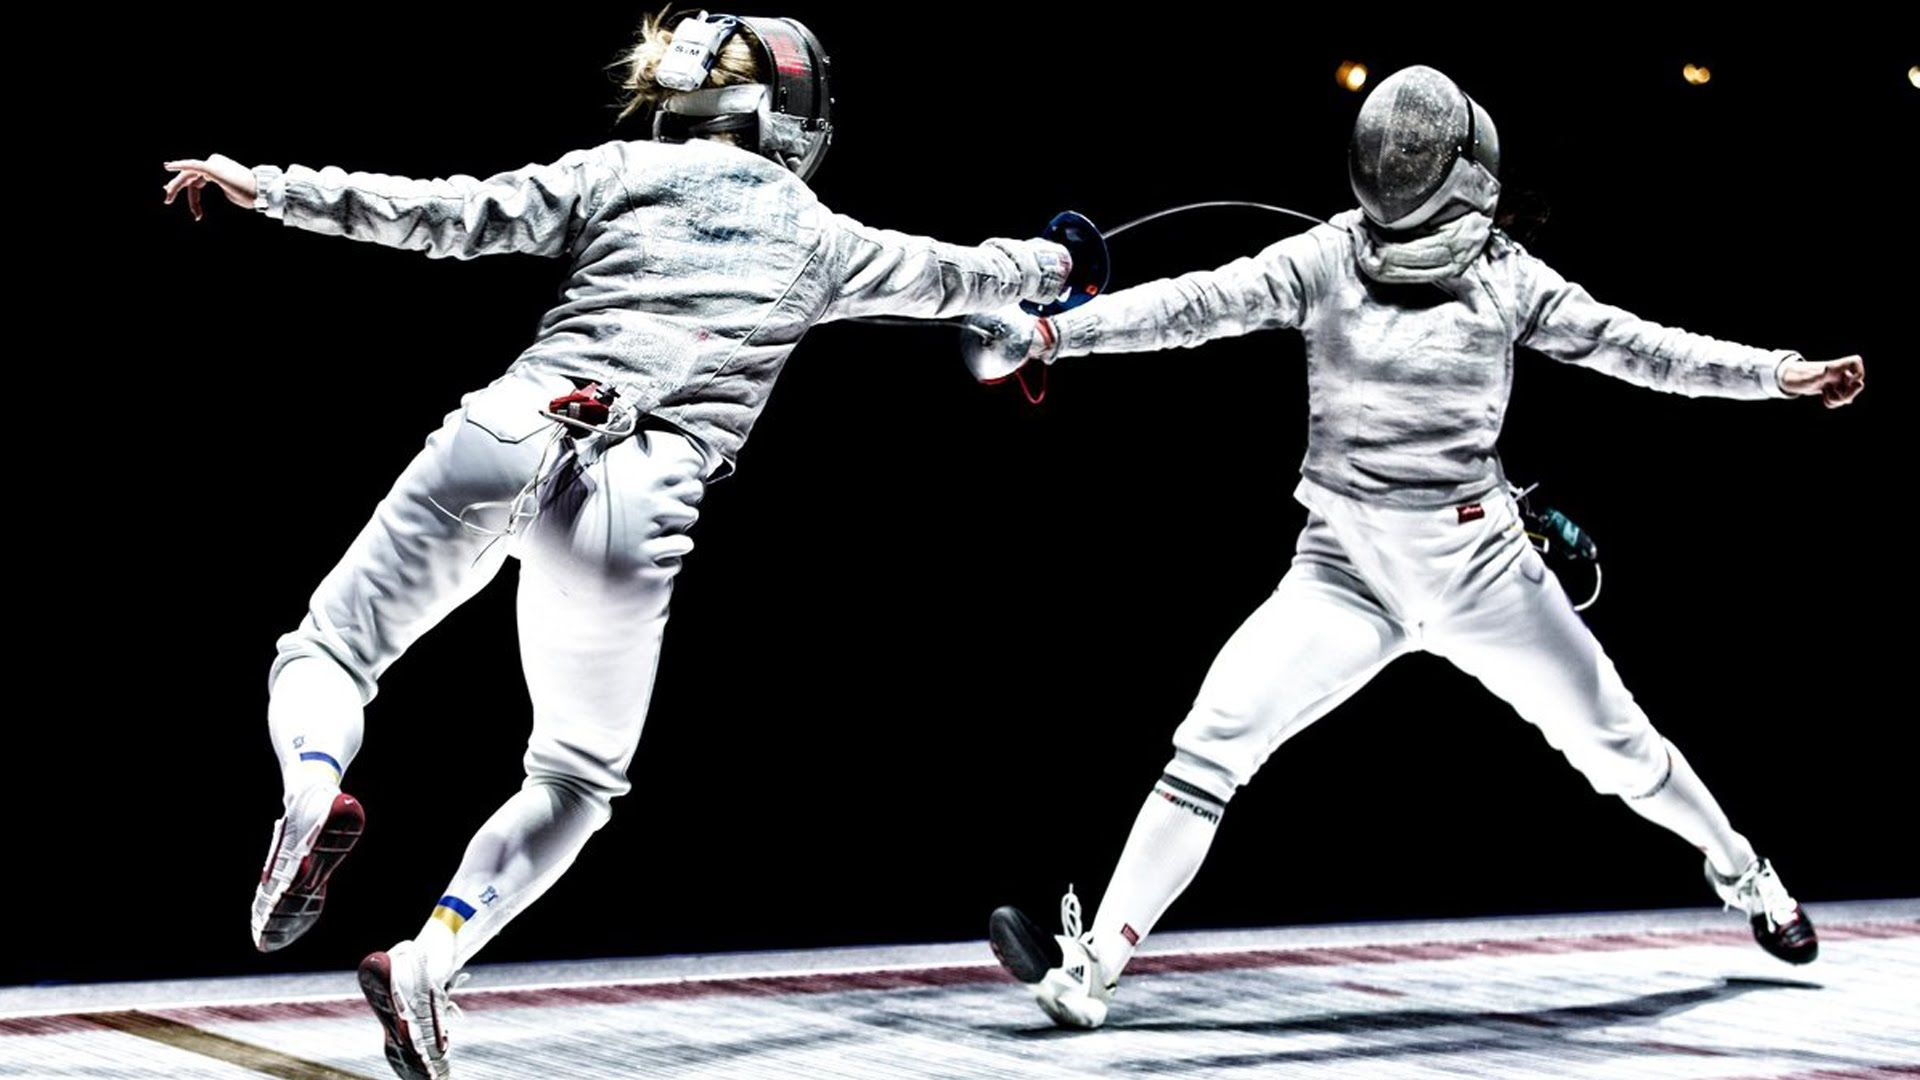 Fencing picture